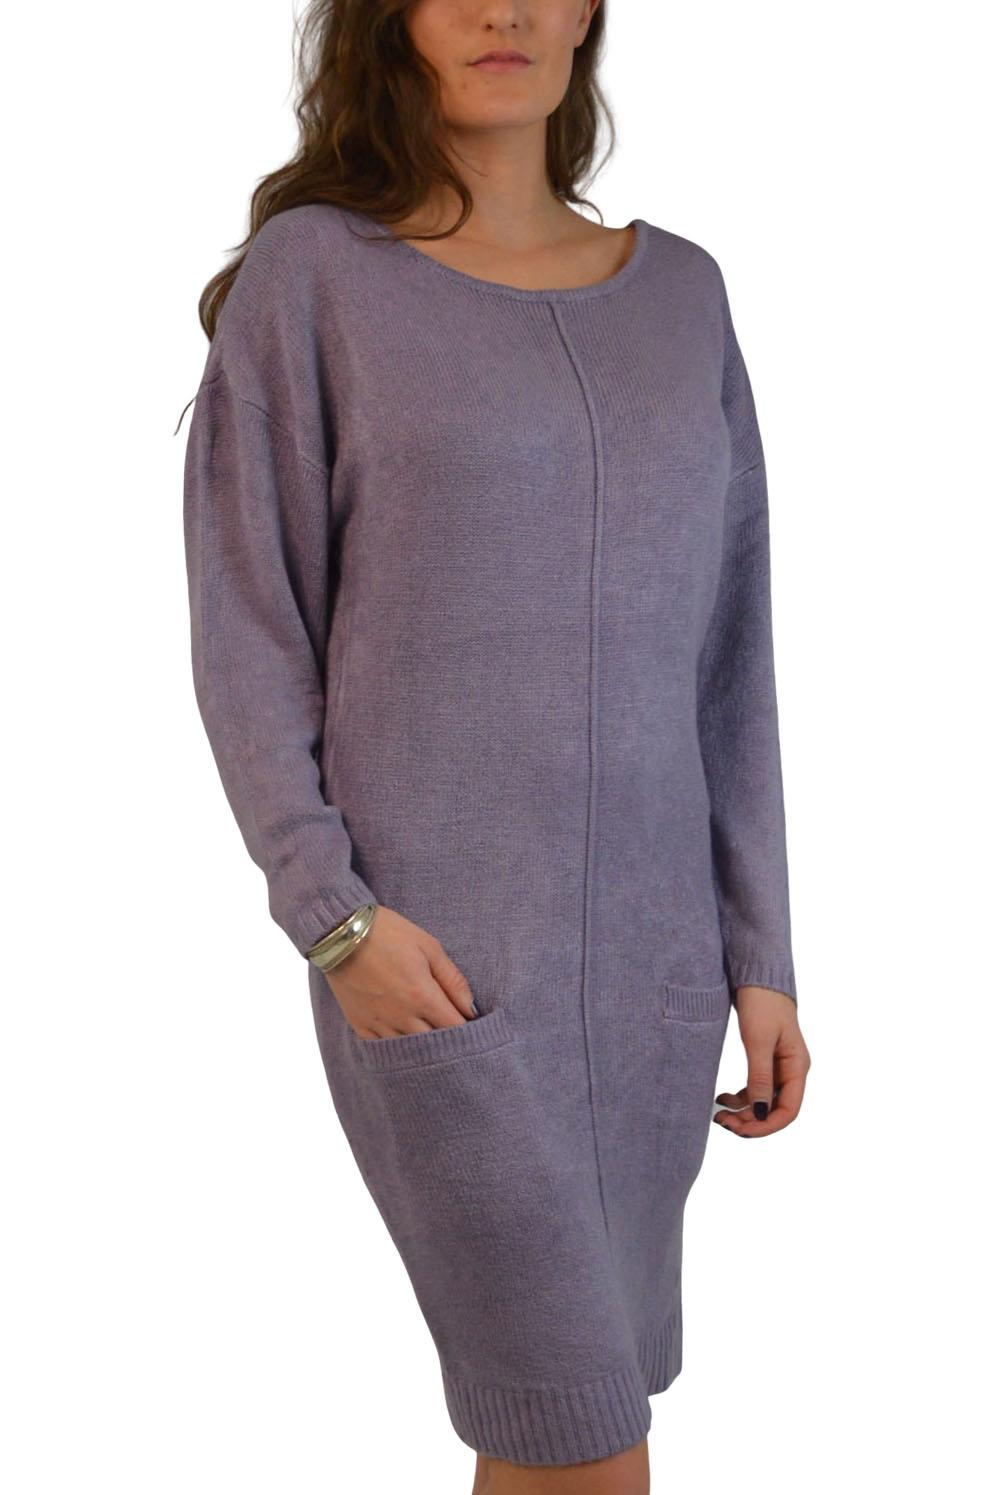 Womens-Soft-Long-Jumper-Dress-Round-Neck-Front-Pockets-Lilac-Black-Pink thumbnail 9